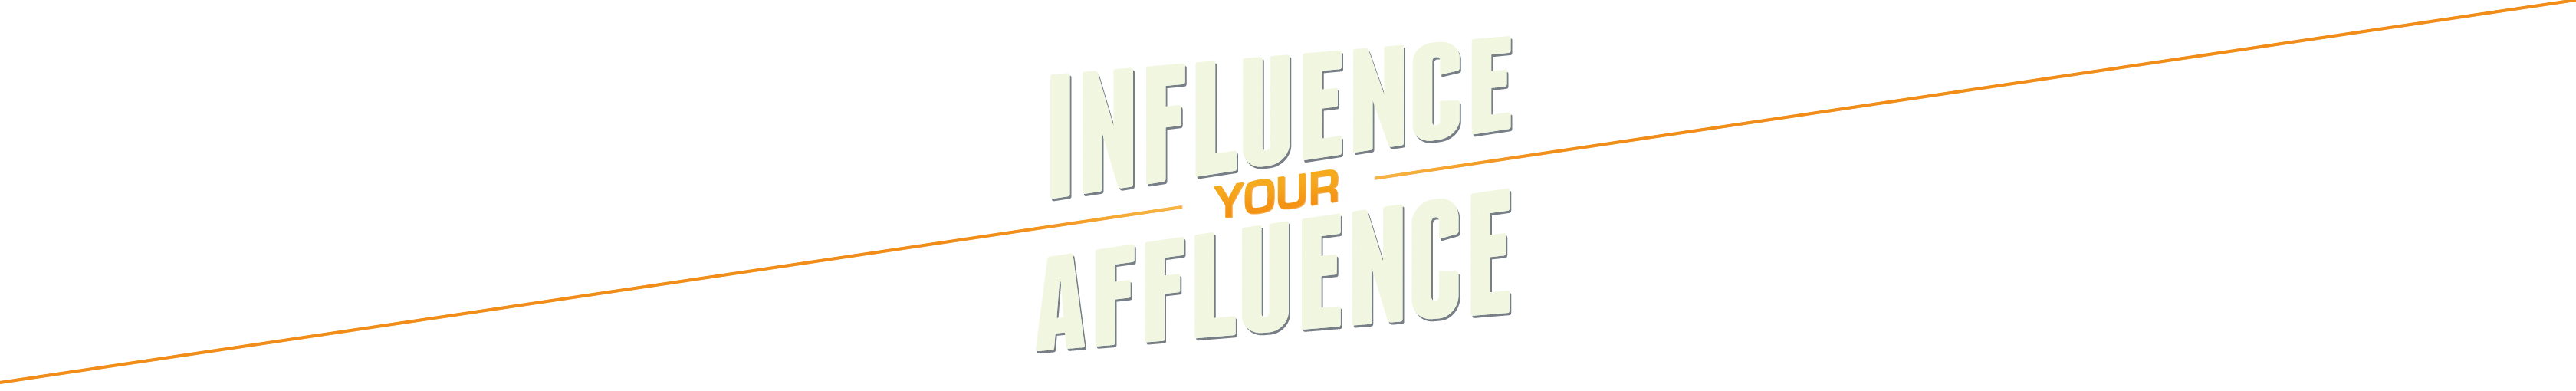 Influence Your Affluence